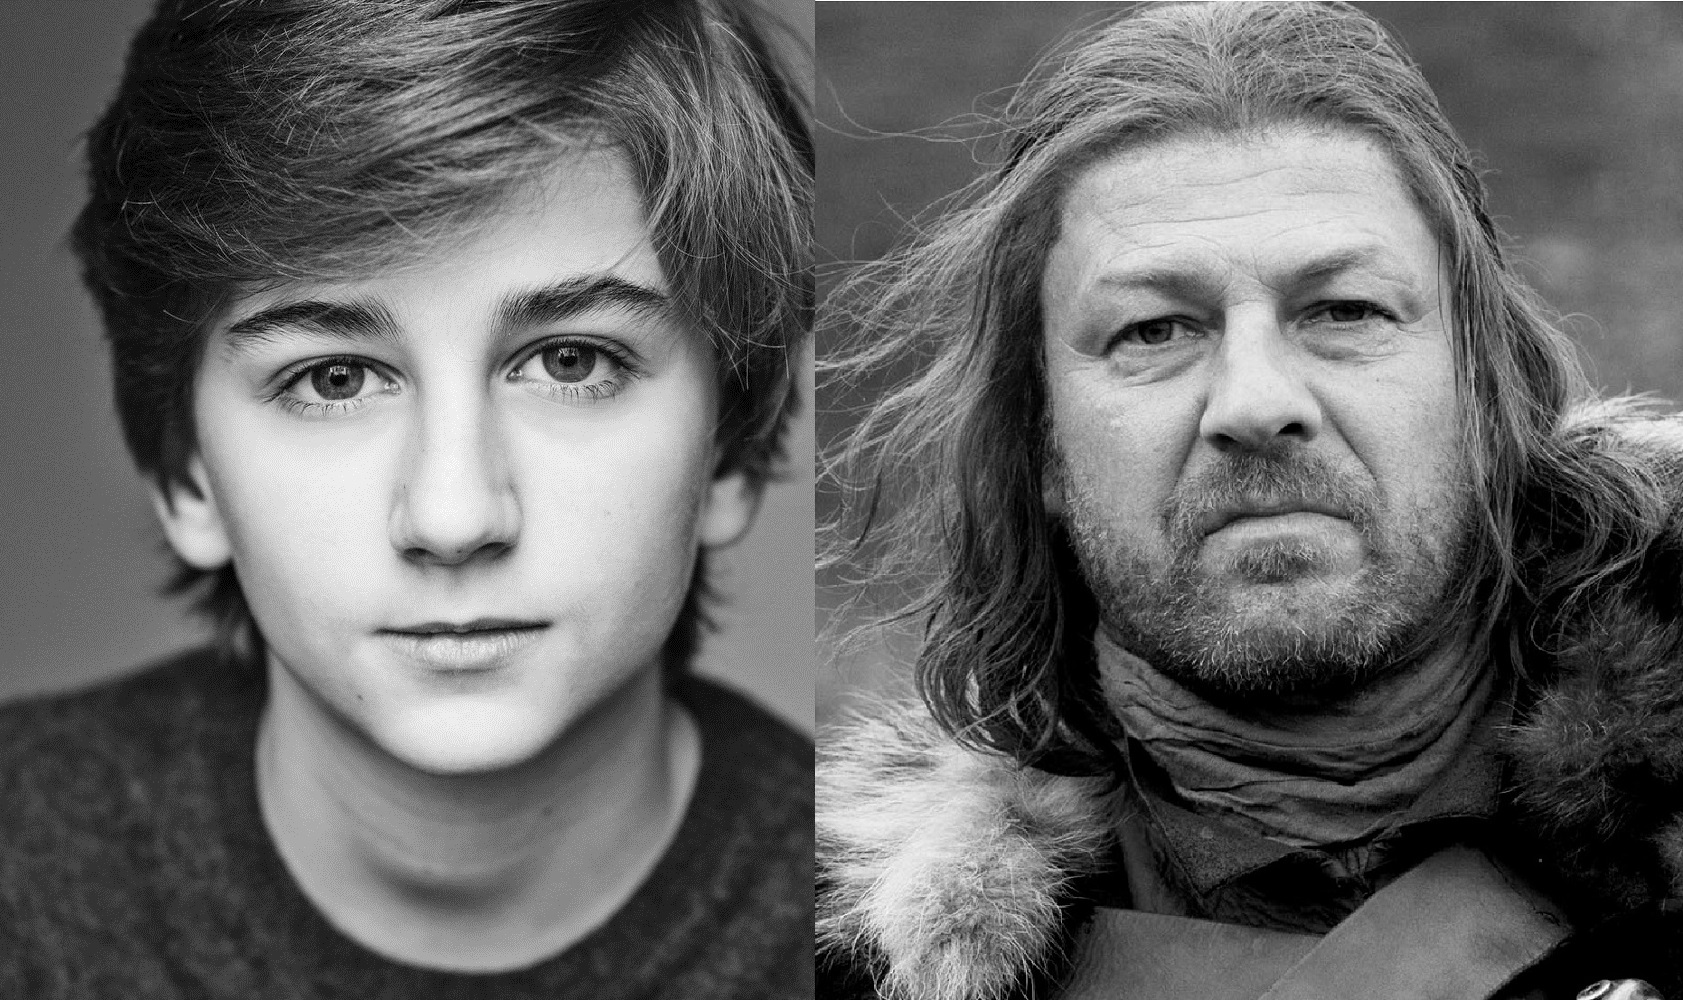 Sebastian Croft as Eddard Stark the Quiet Wolf